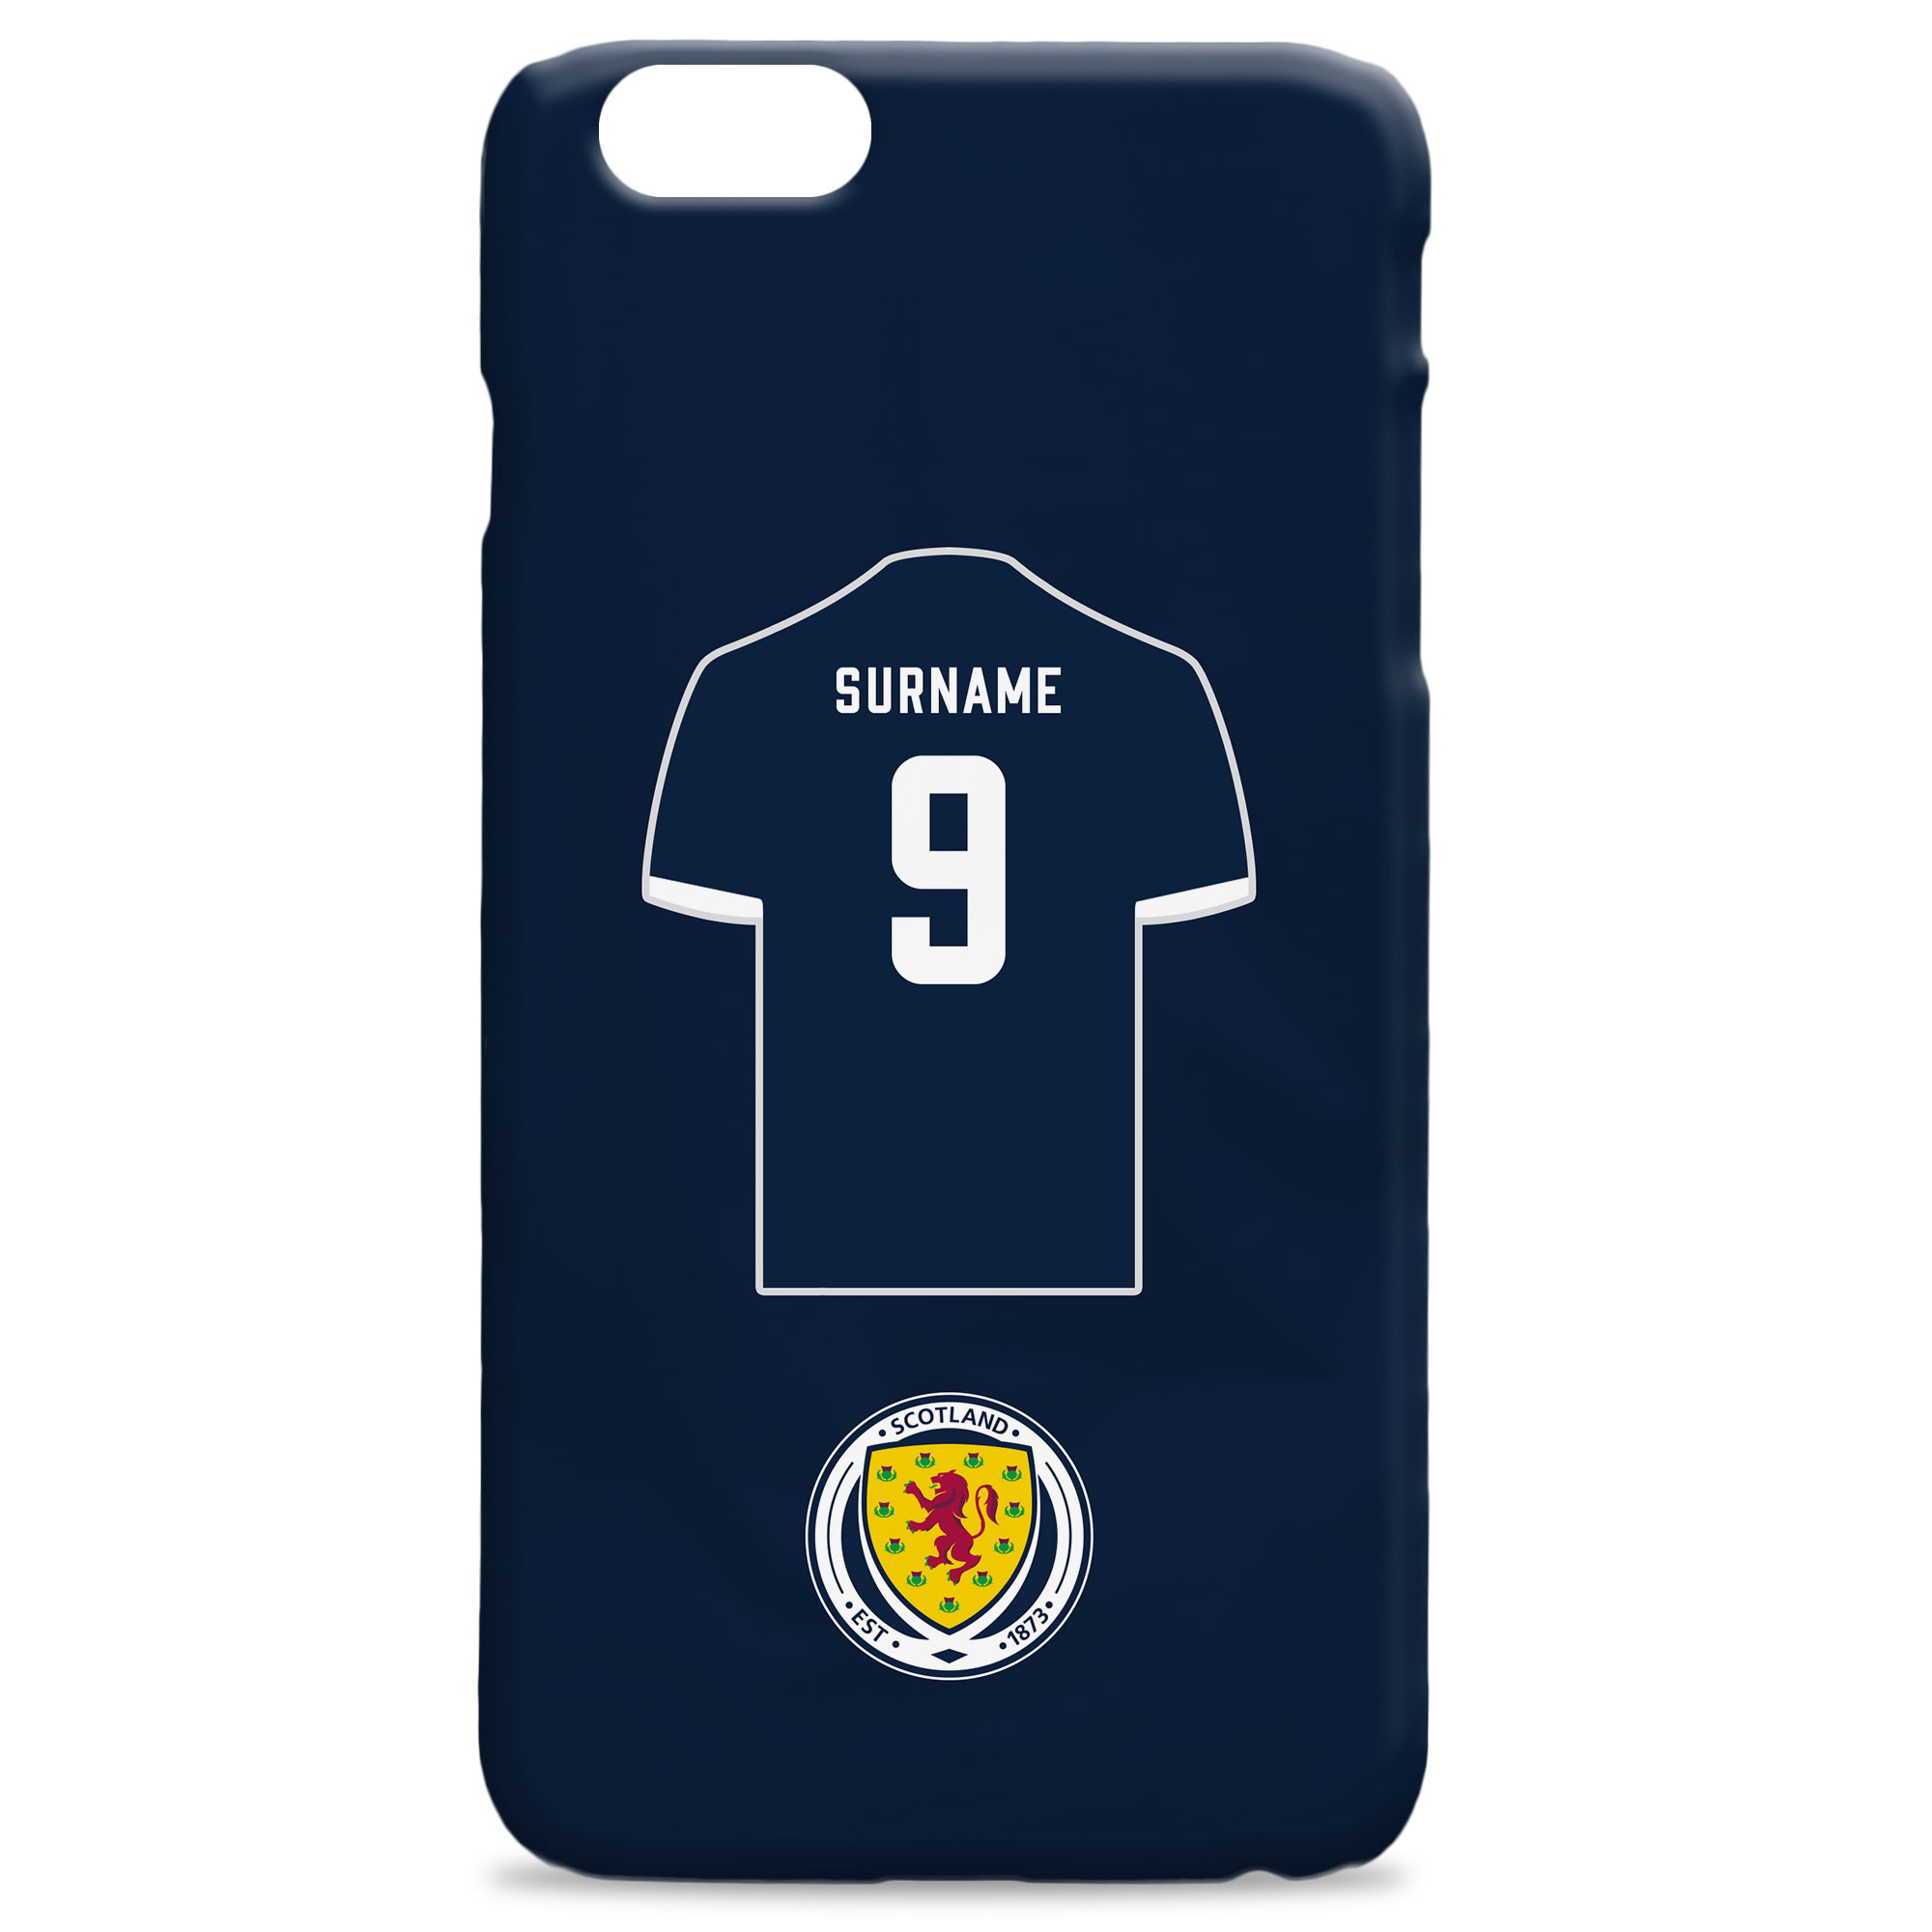 Scotland Shirt Hard Back Phone Case